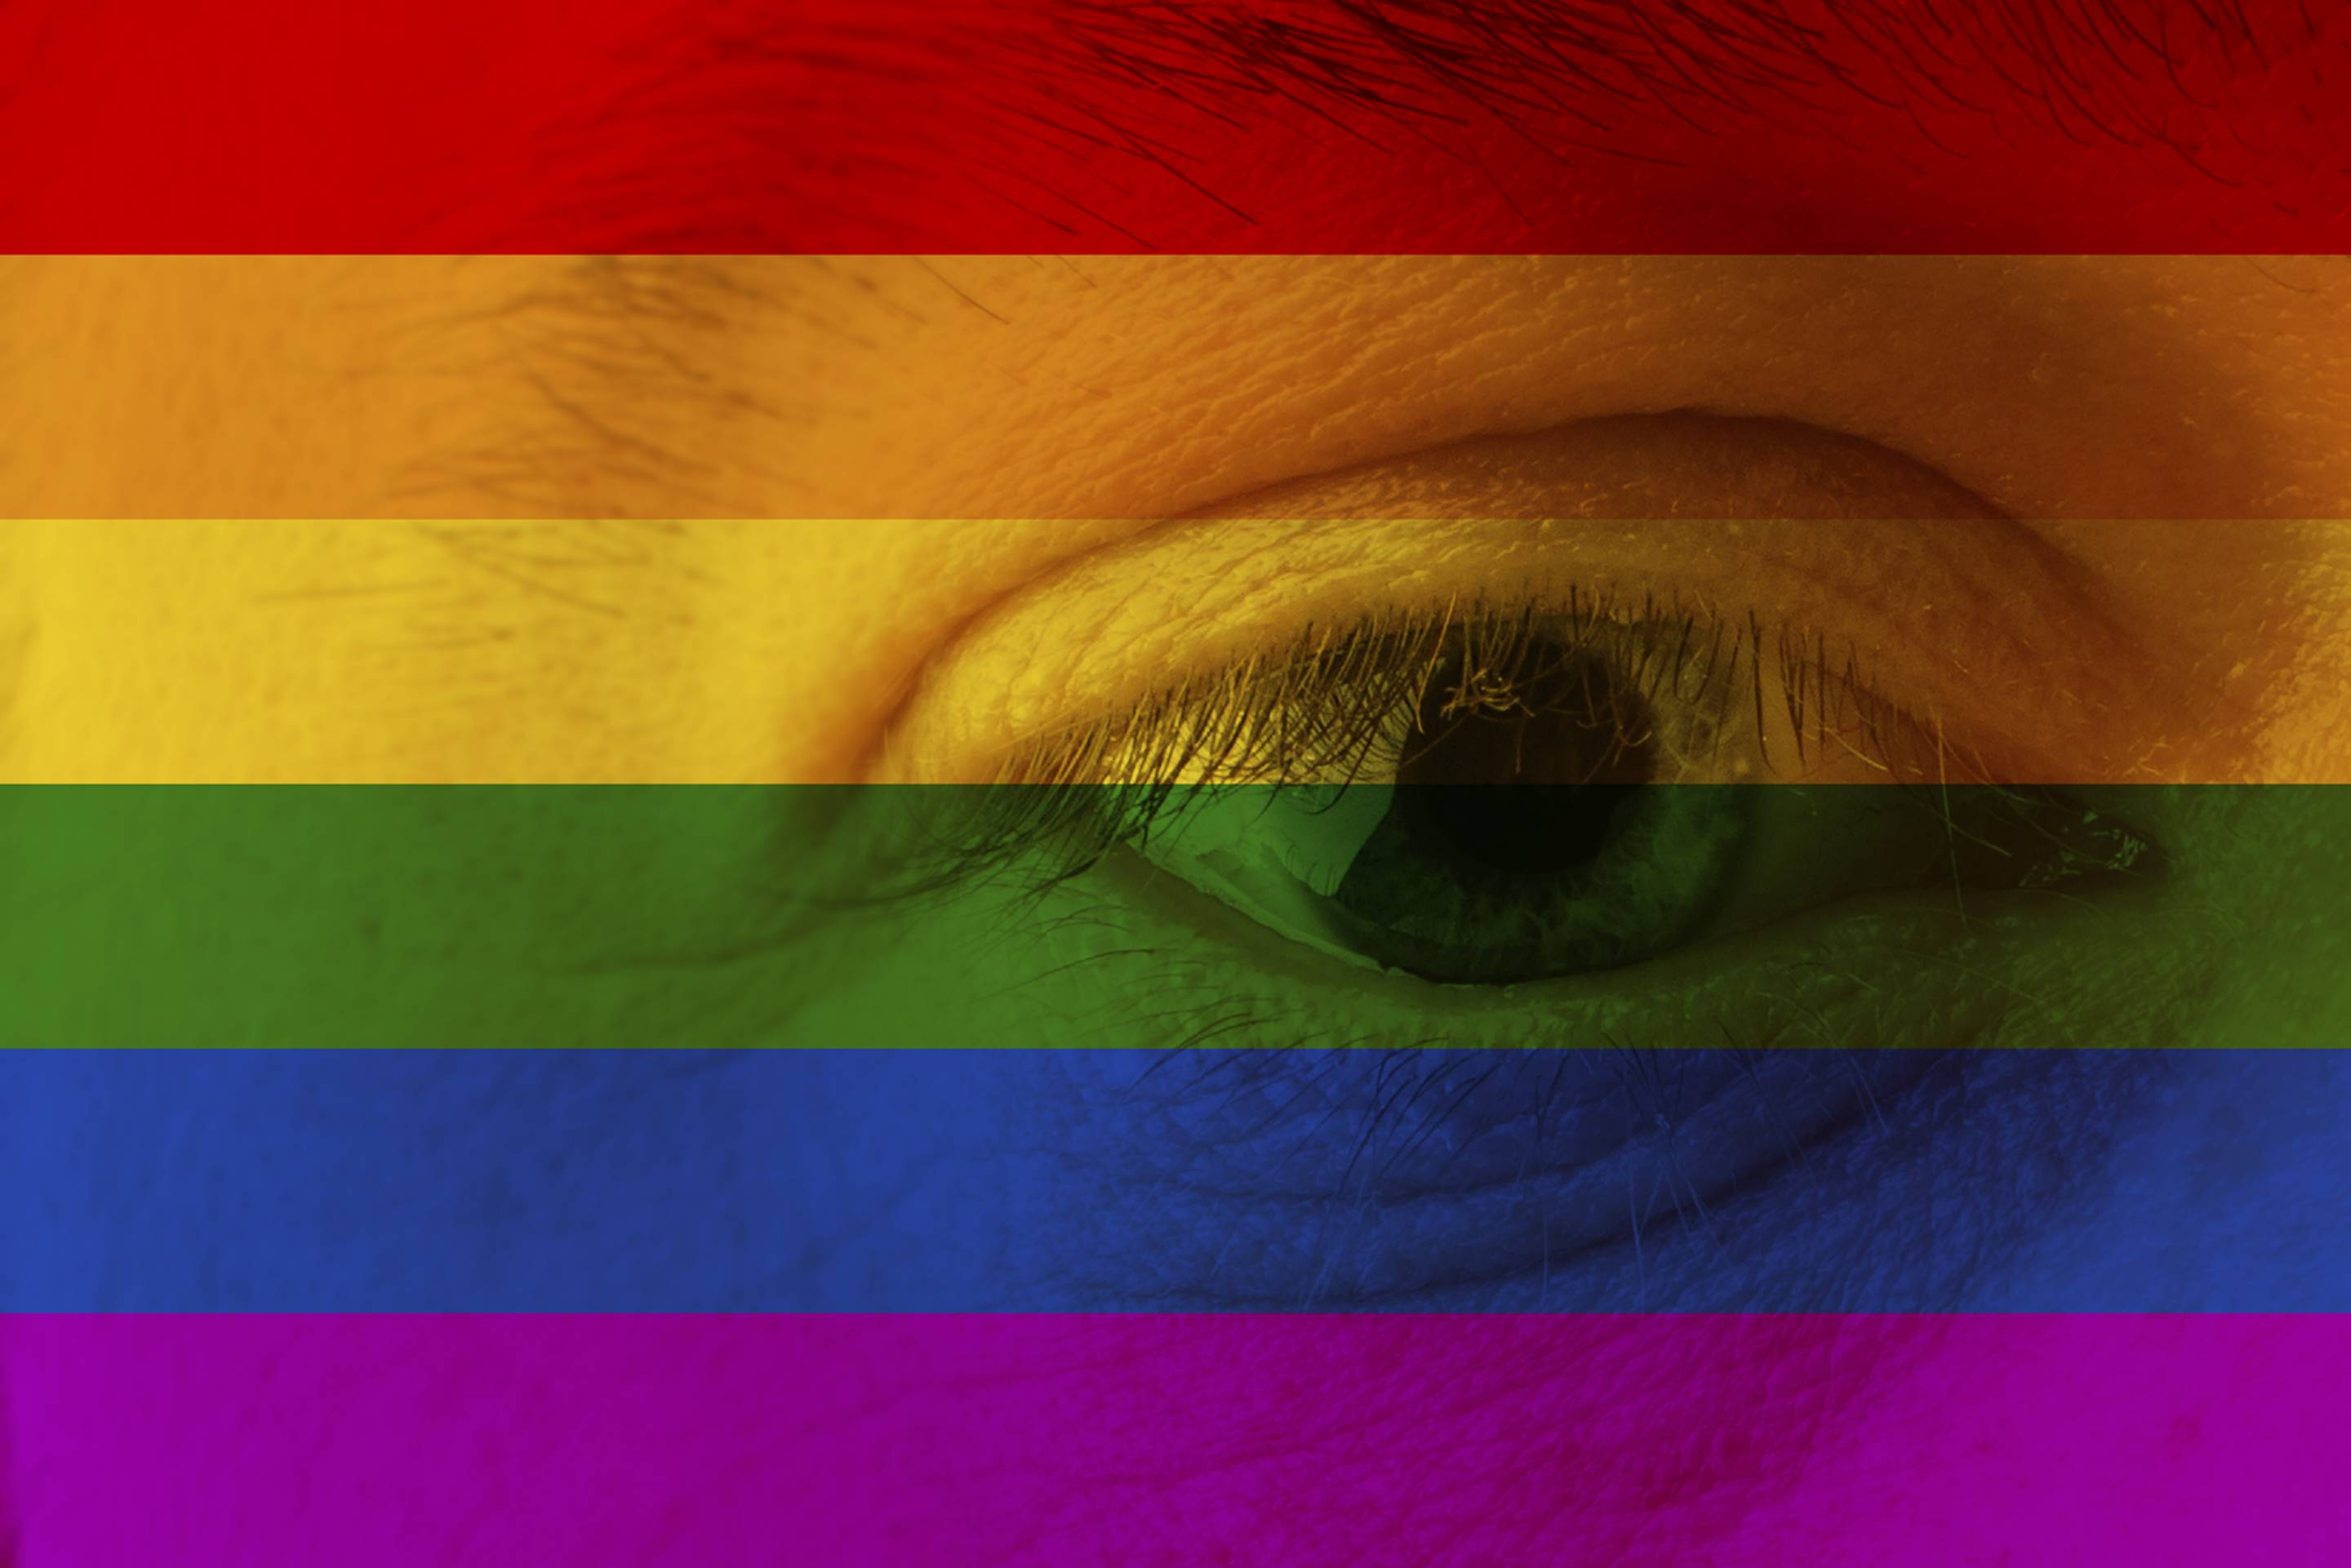 Human face and eye painted with flag of LGBT movement